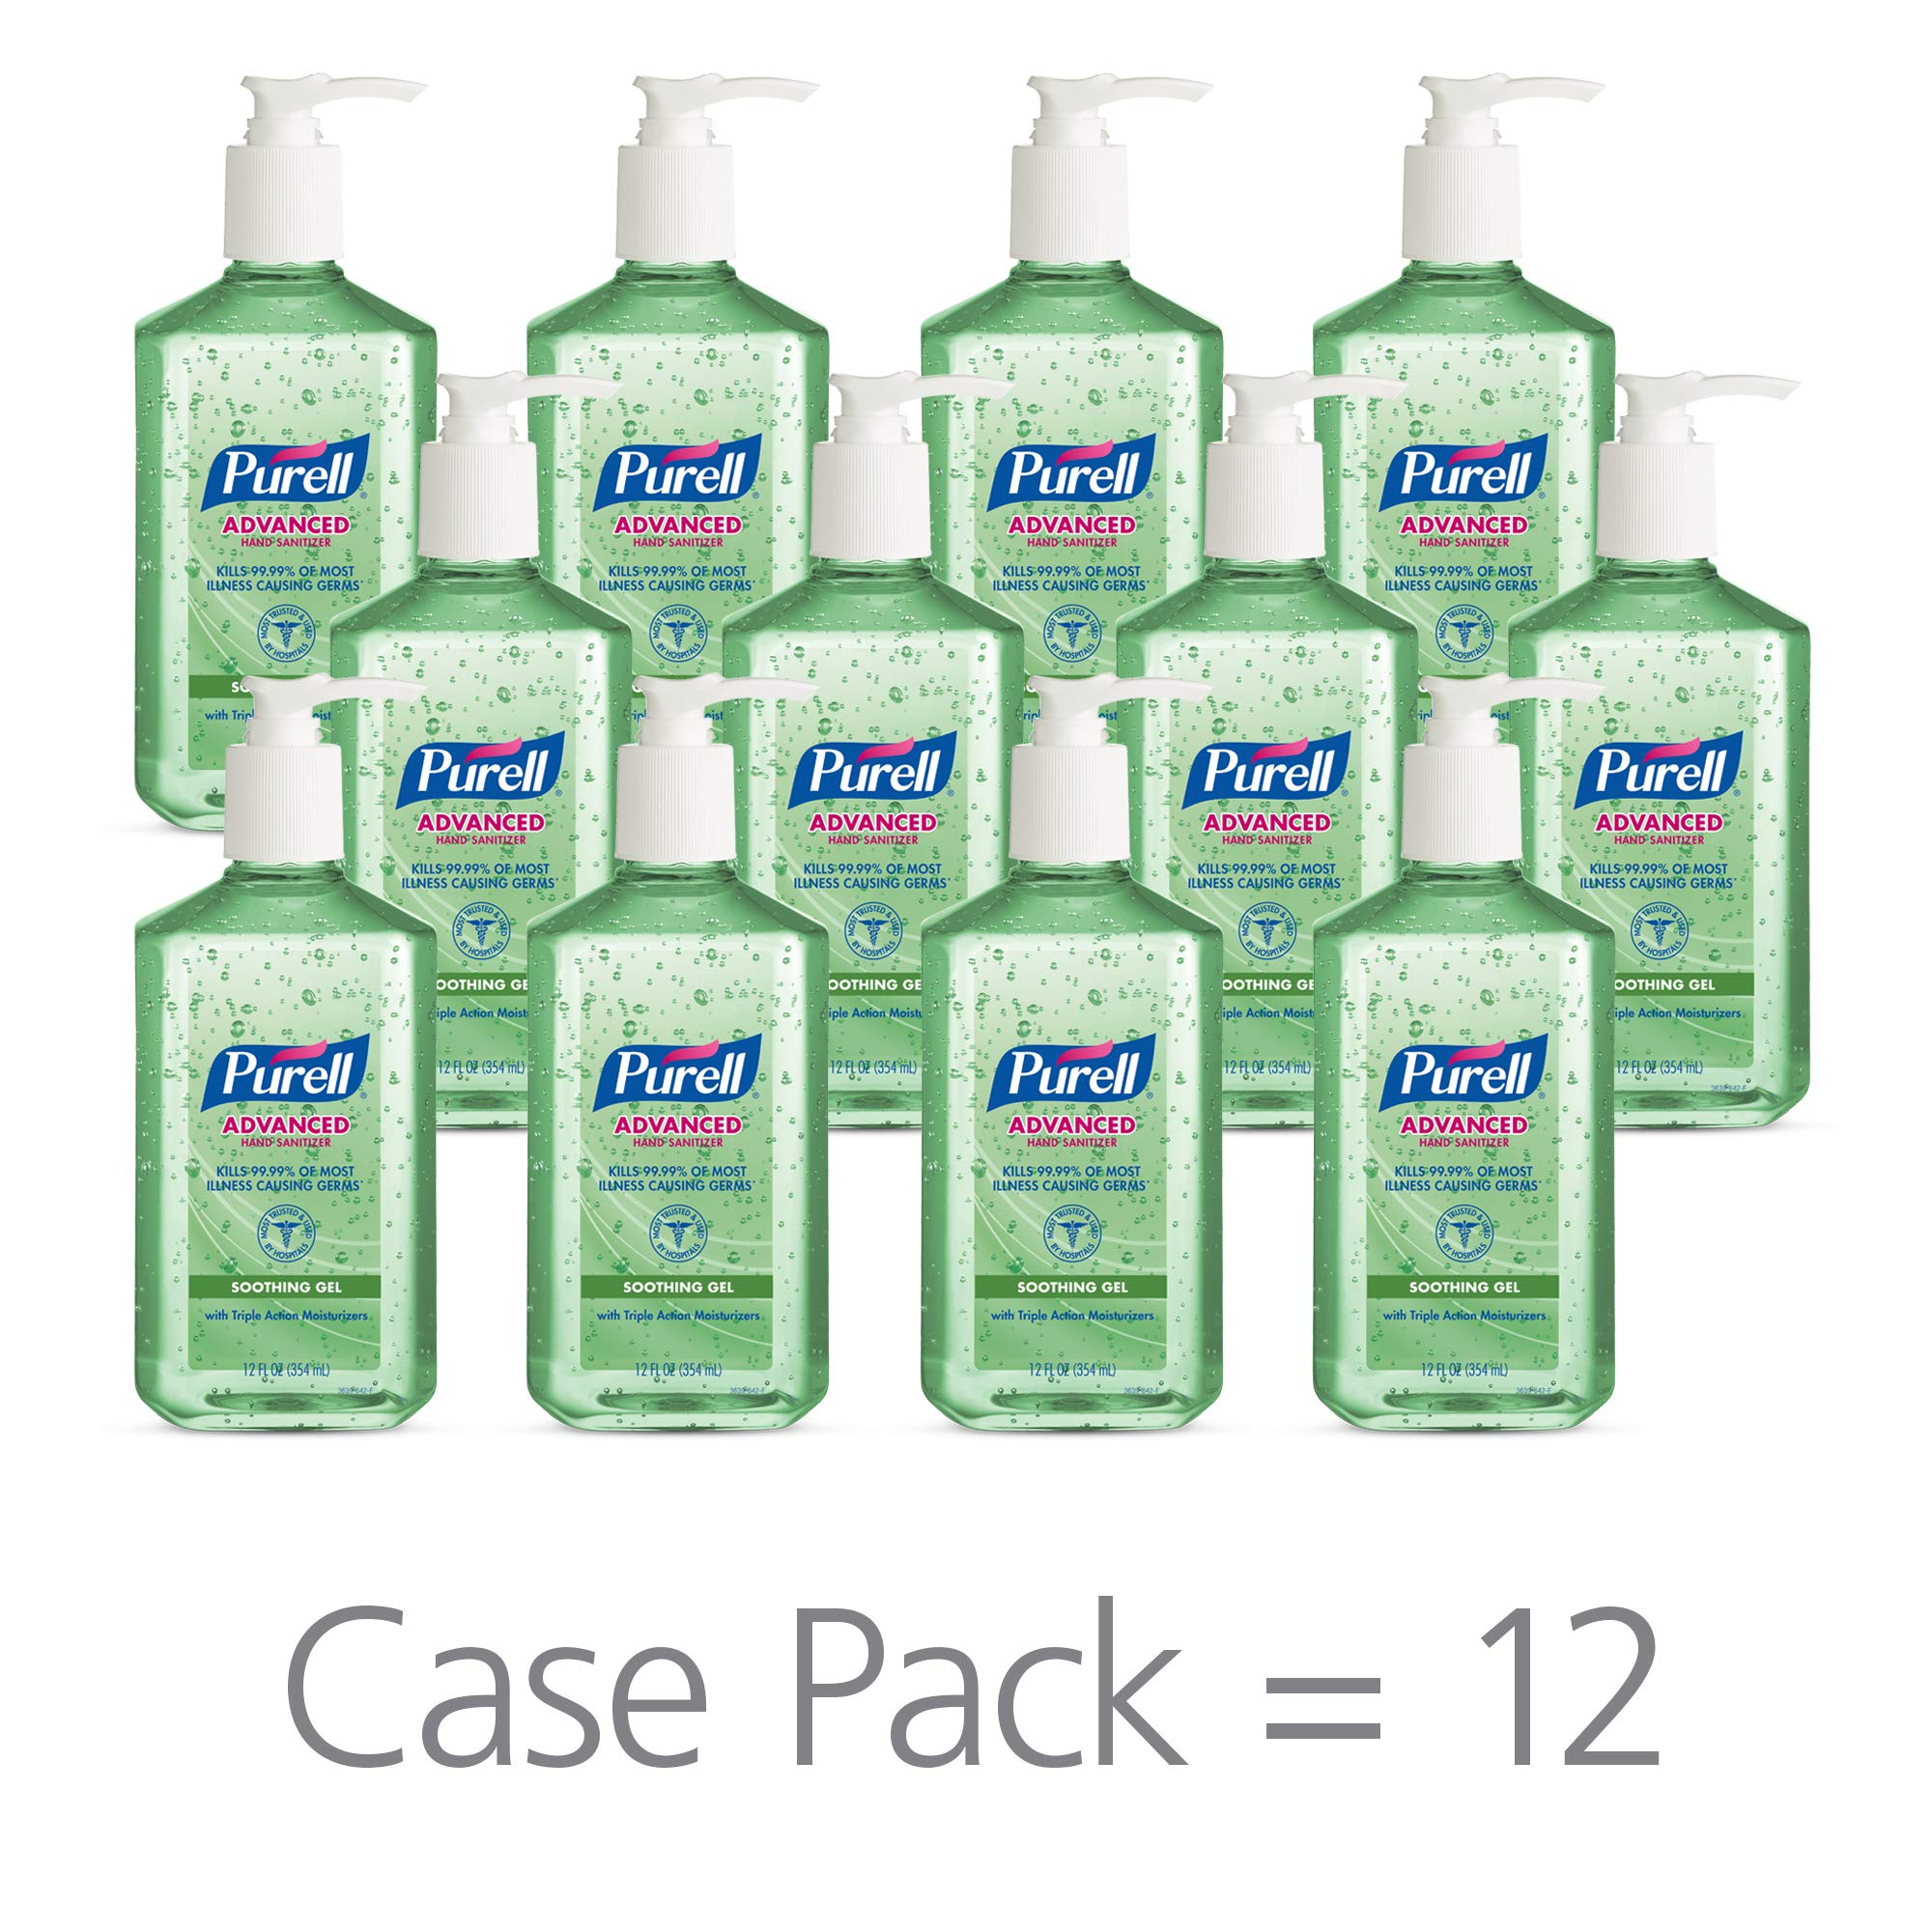 PURELL Advanced Hand Sanitizer Soothing Gel for the workplace, Fresh scent, with Aloe and Vitamin E - 12 fl oz pump bottle (Pack of 12) - 3639-12 by Purell